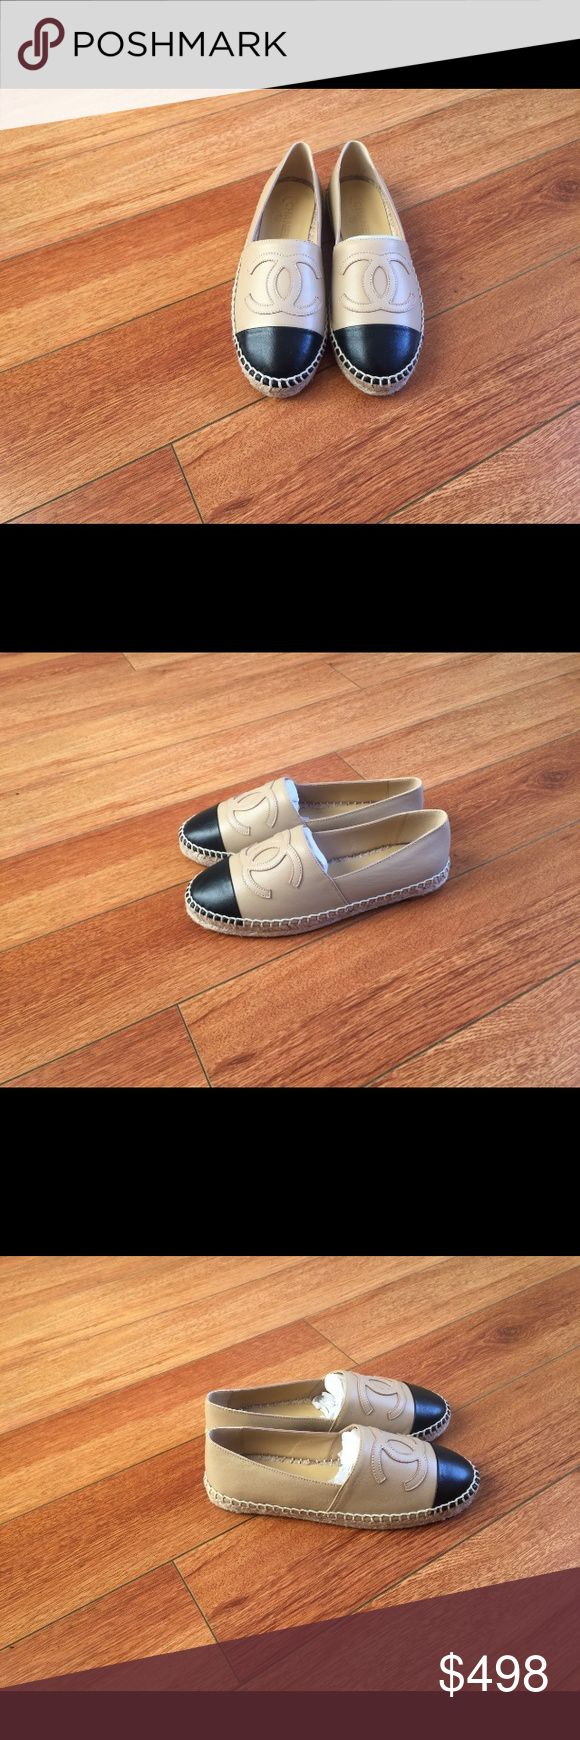 Chanel Espadrilles Beige/Black Lambskin Leather Comes with authenticity card and box. In 9/10 condition. Perfect for a gift. CHANEL Shoes Espadrilles